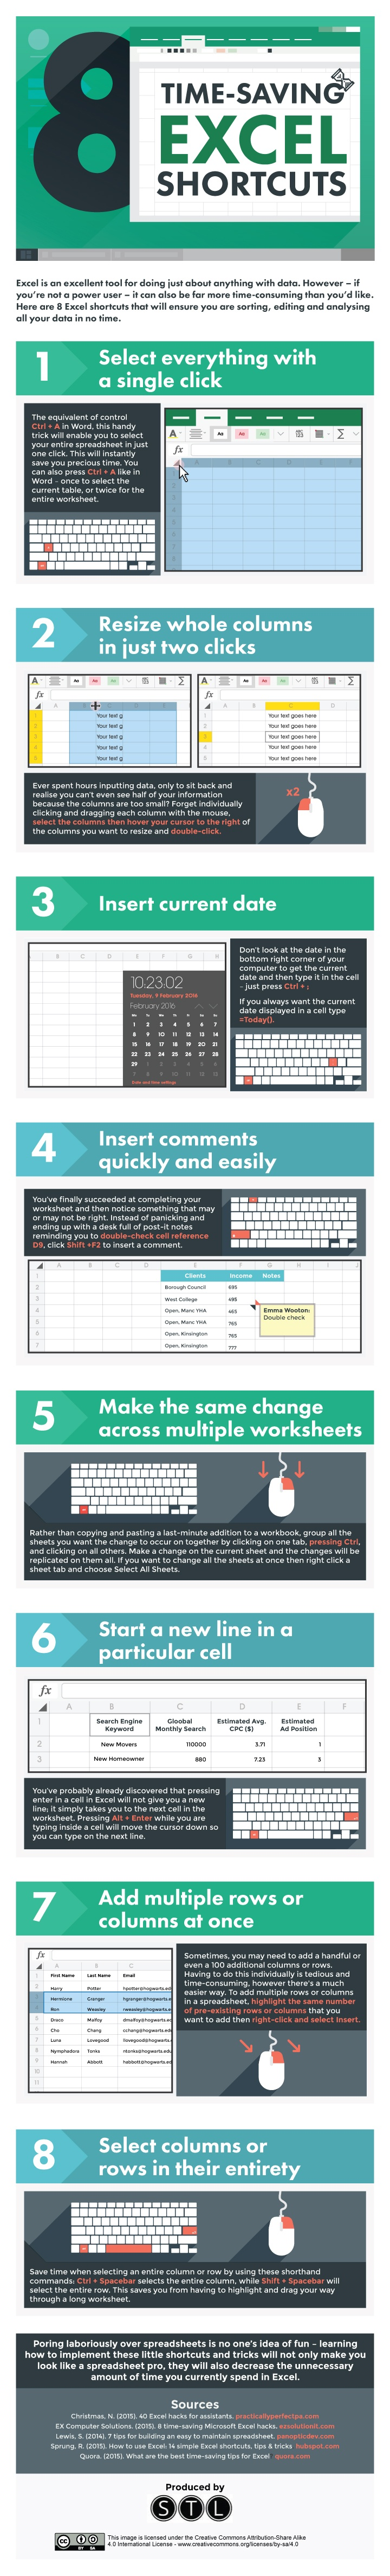 Excel_Shortcuts_Infographic.jpg